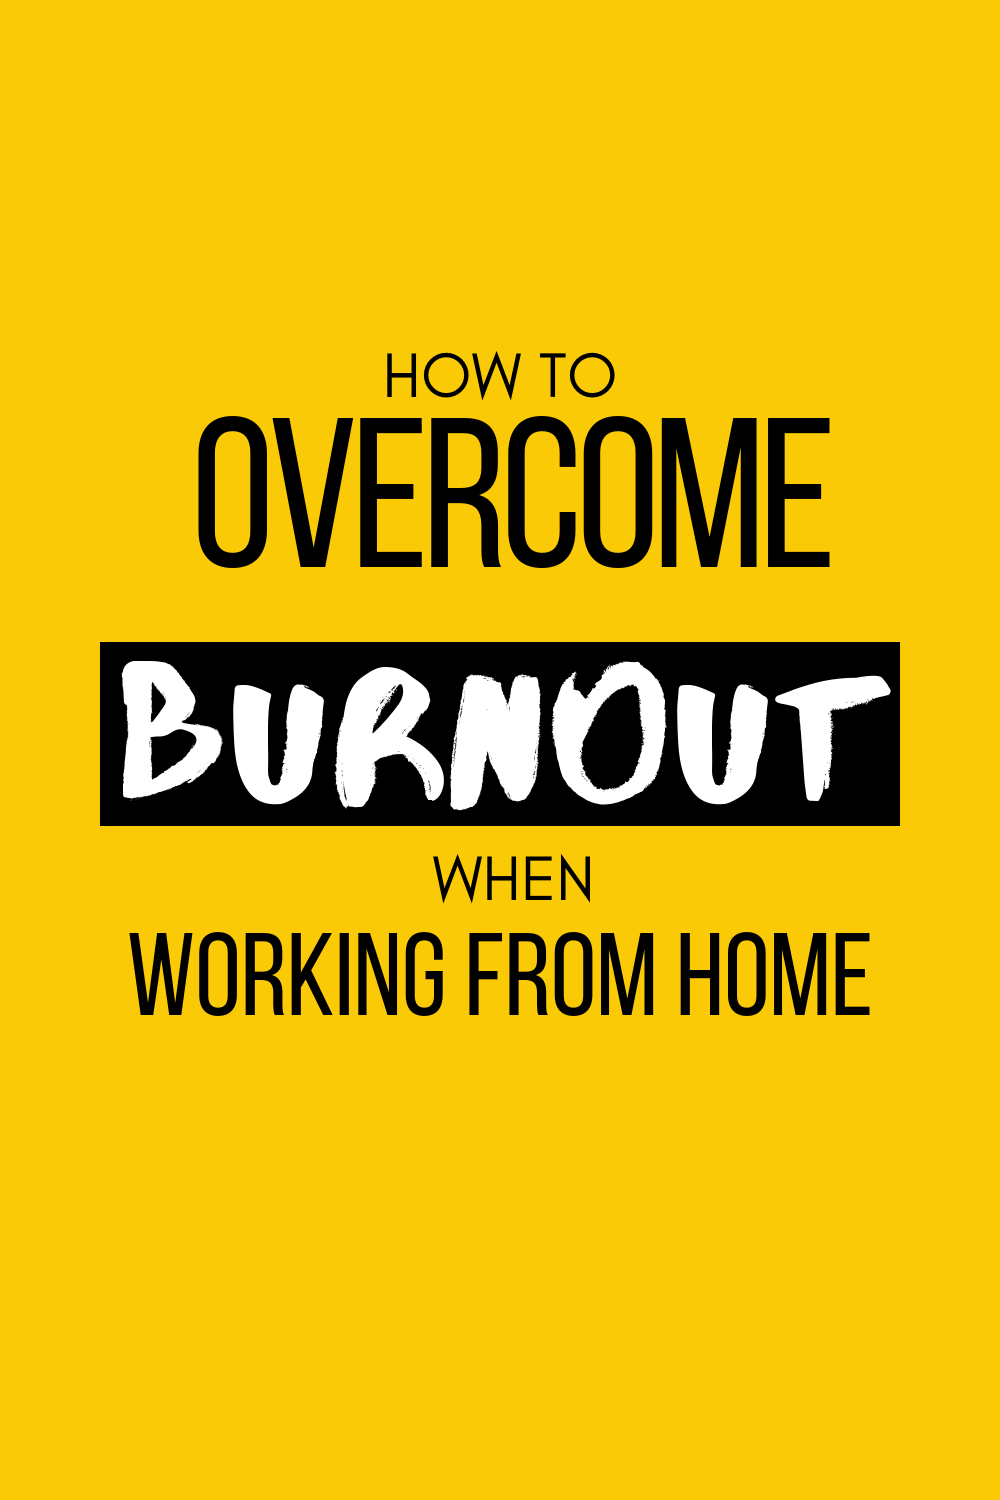 How to Overcome Burnout When Working From Home